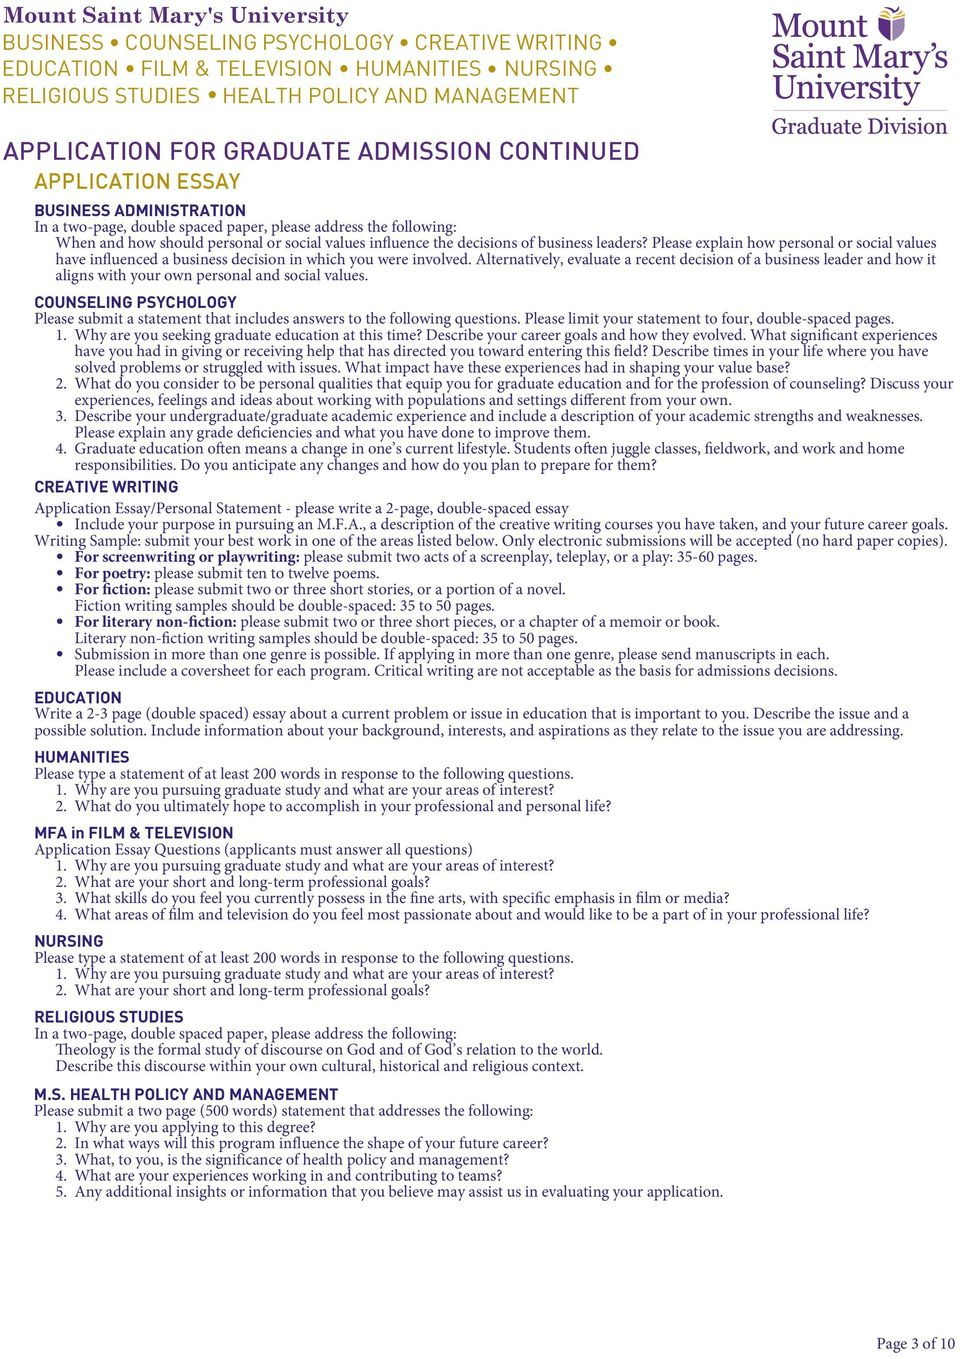 Alternatively, evaluate a recent decision of a business leader and how it aligns with your own personal and social values.